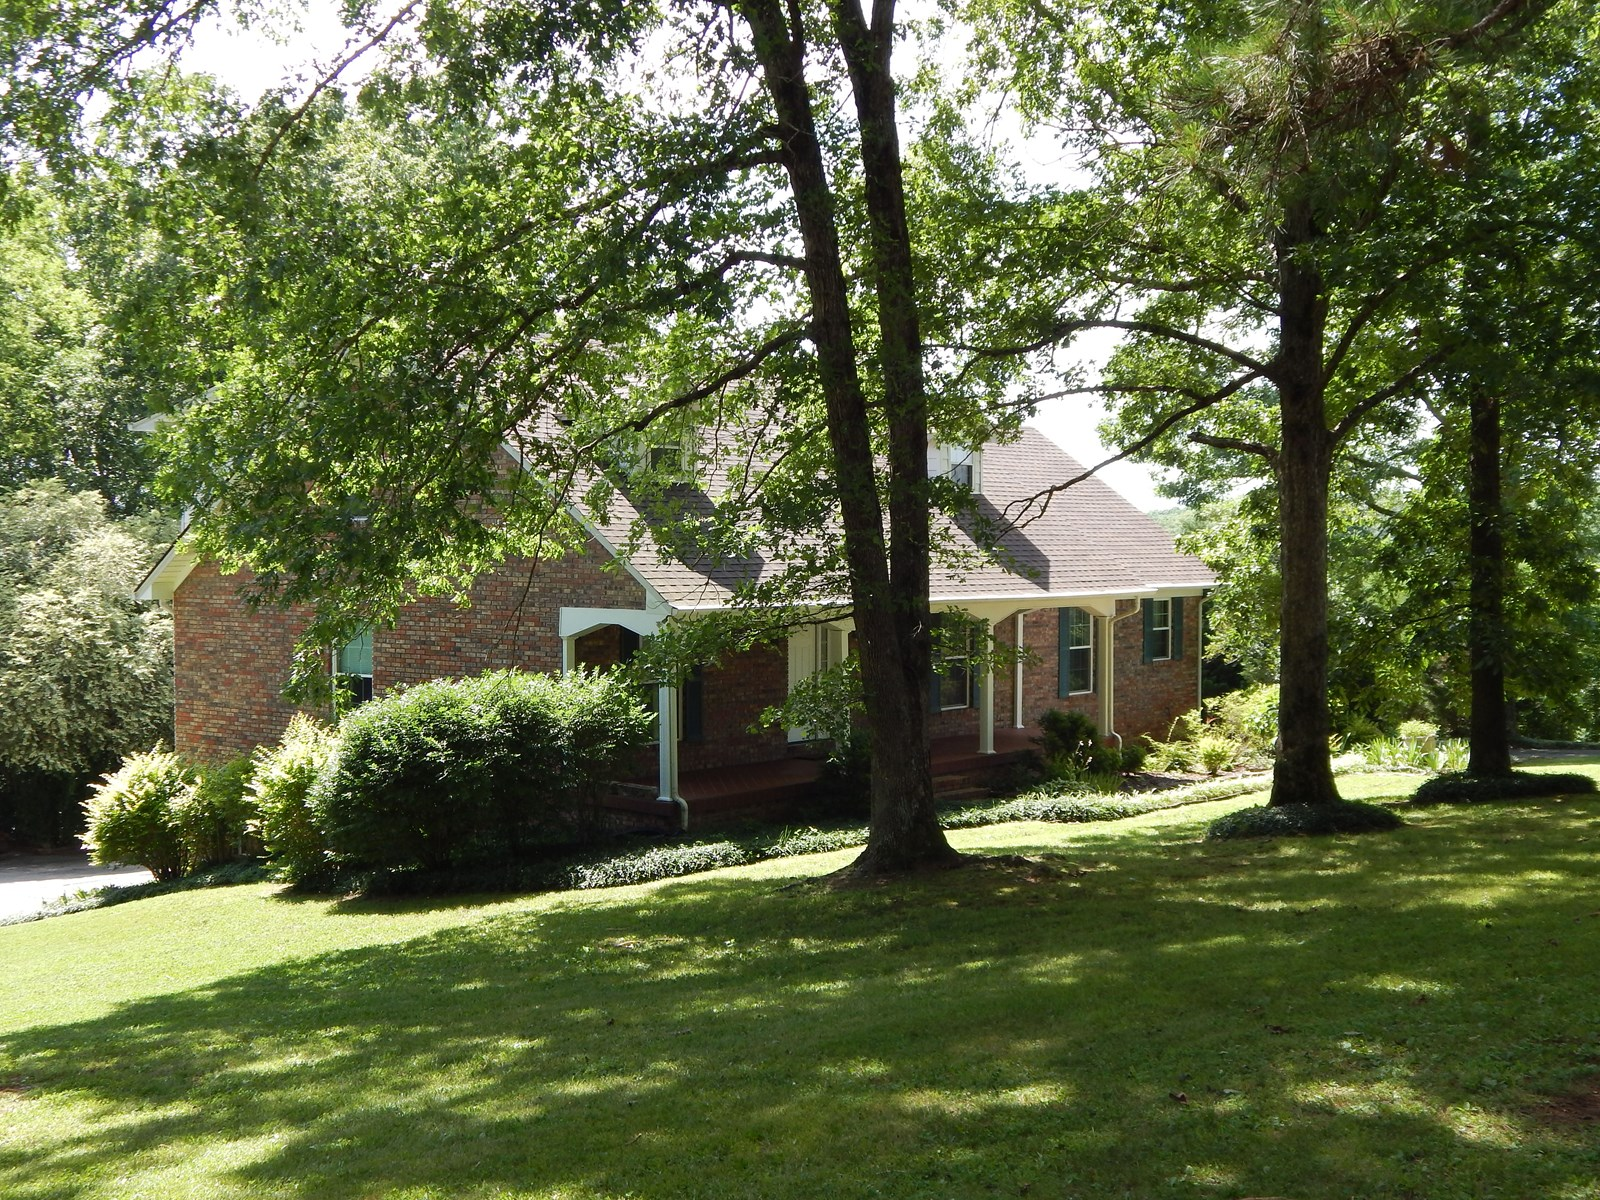 TENNESSEE HOME FOR SALE, 3 BED, 2.5 BATH ON 1.46 ACRES!!